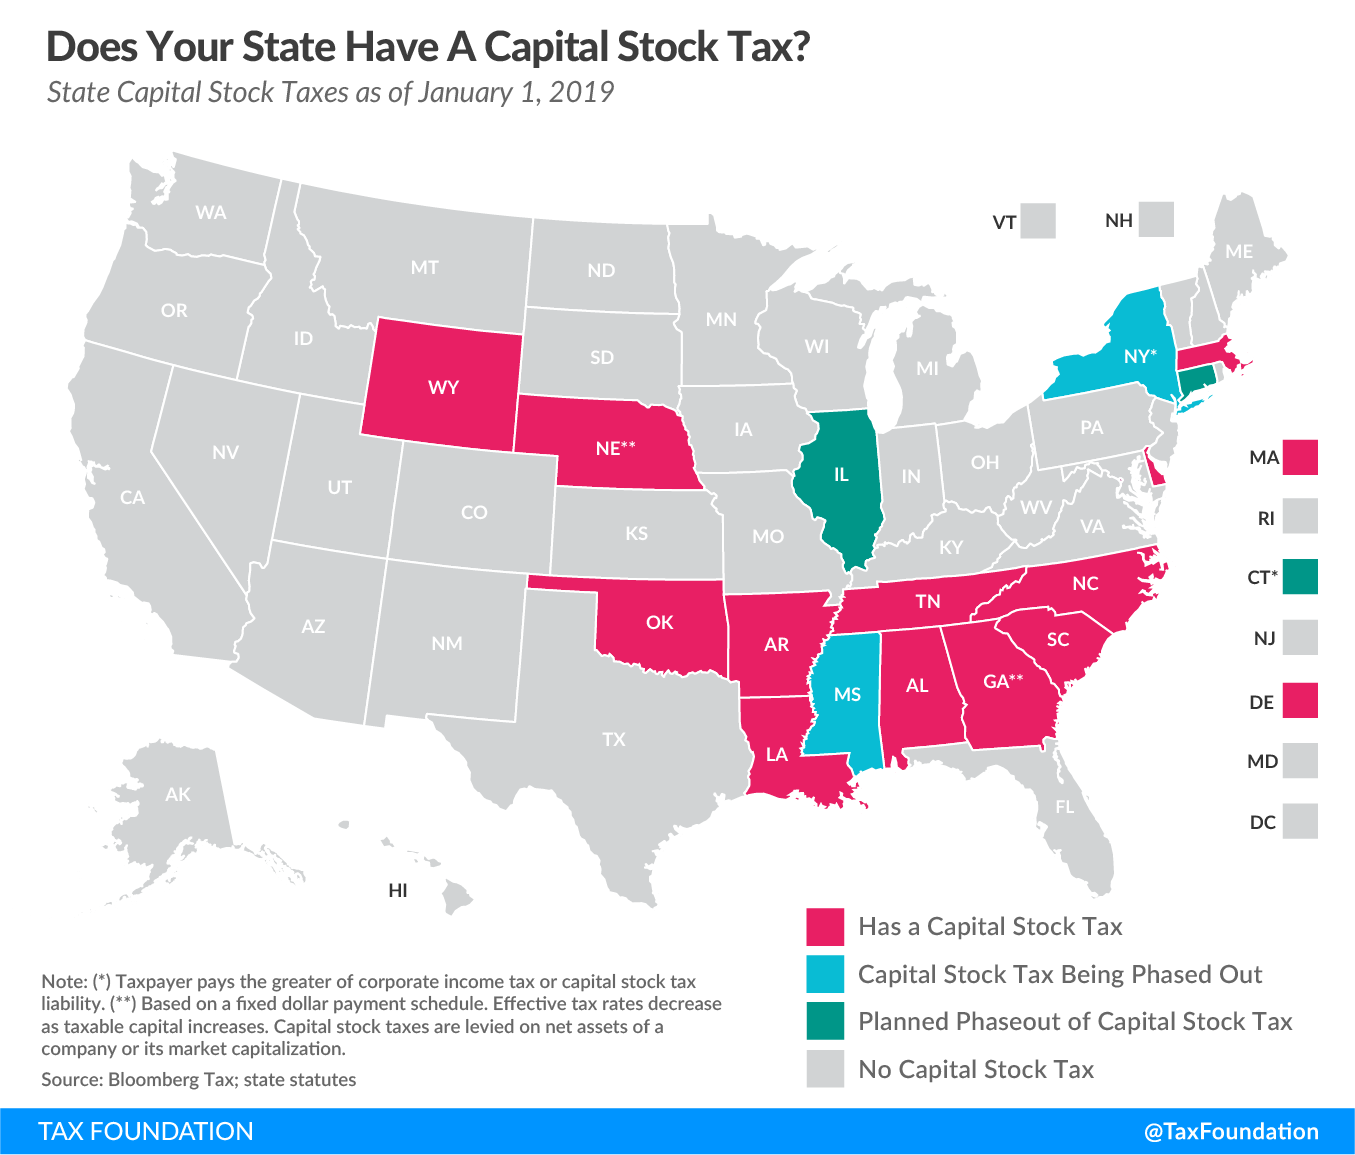 state capital stock tax, state franchise tax, state capital stock taxes, state franchise taxes